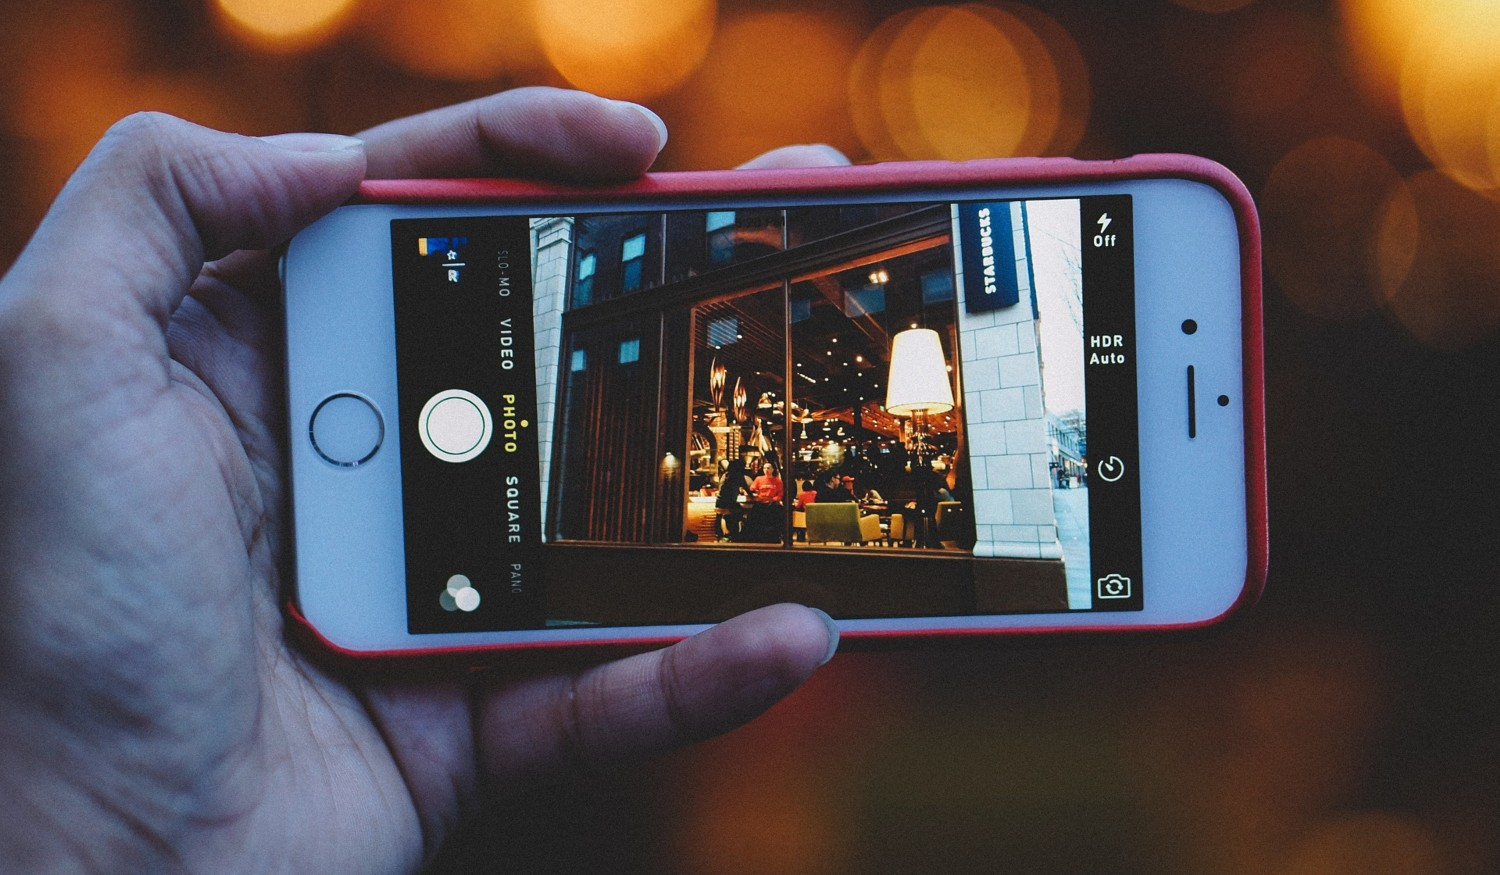 Lensbaby, Moment, 500px, and Camera+ Join Forces for Two Killer Mobile Photowalks